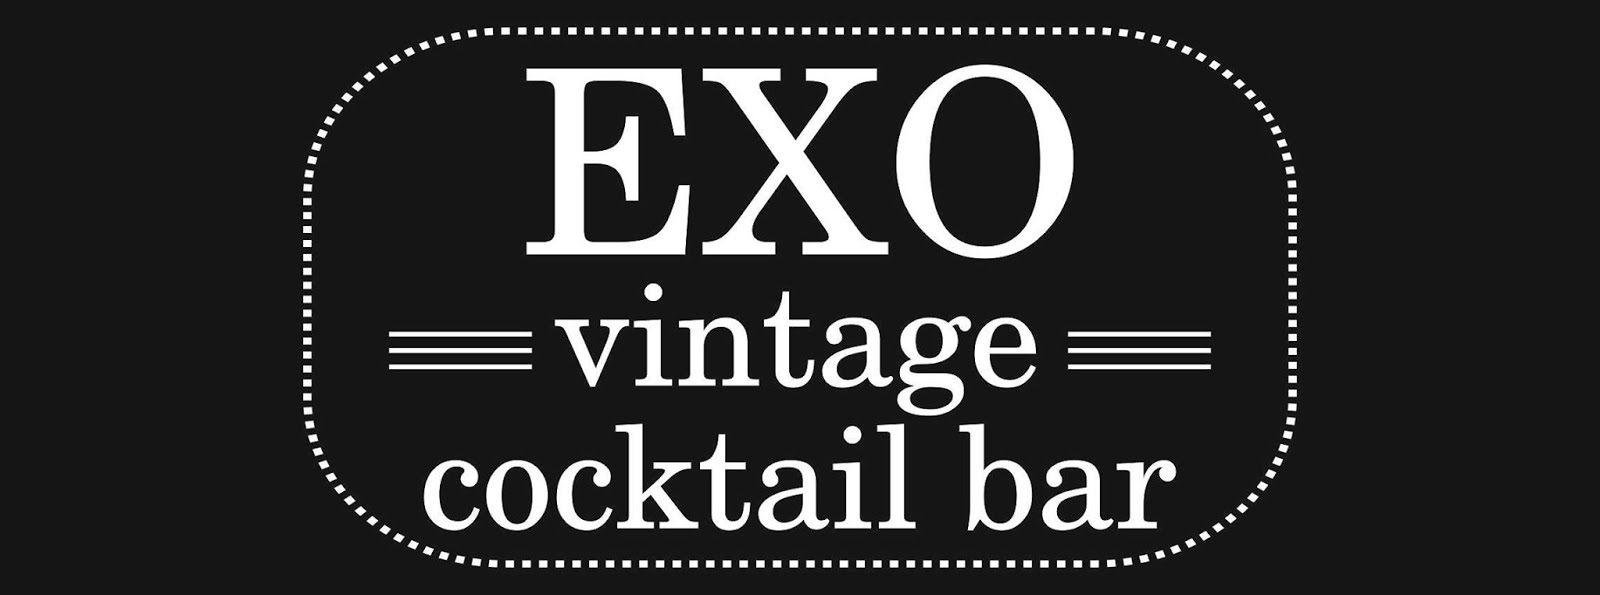 EXO vintage cocktail bar